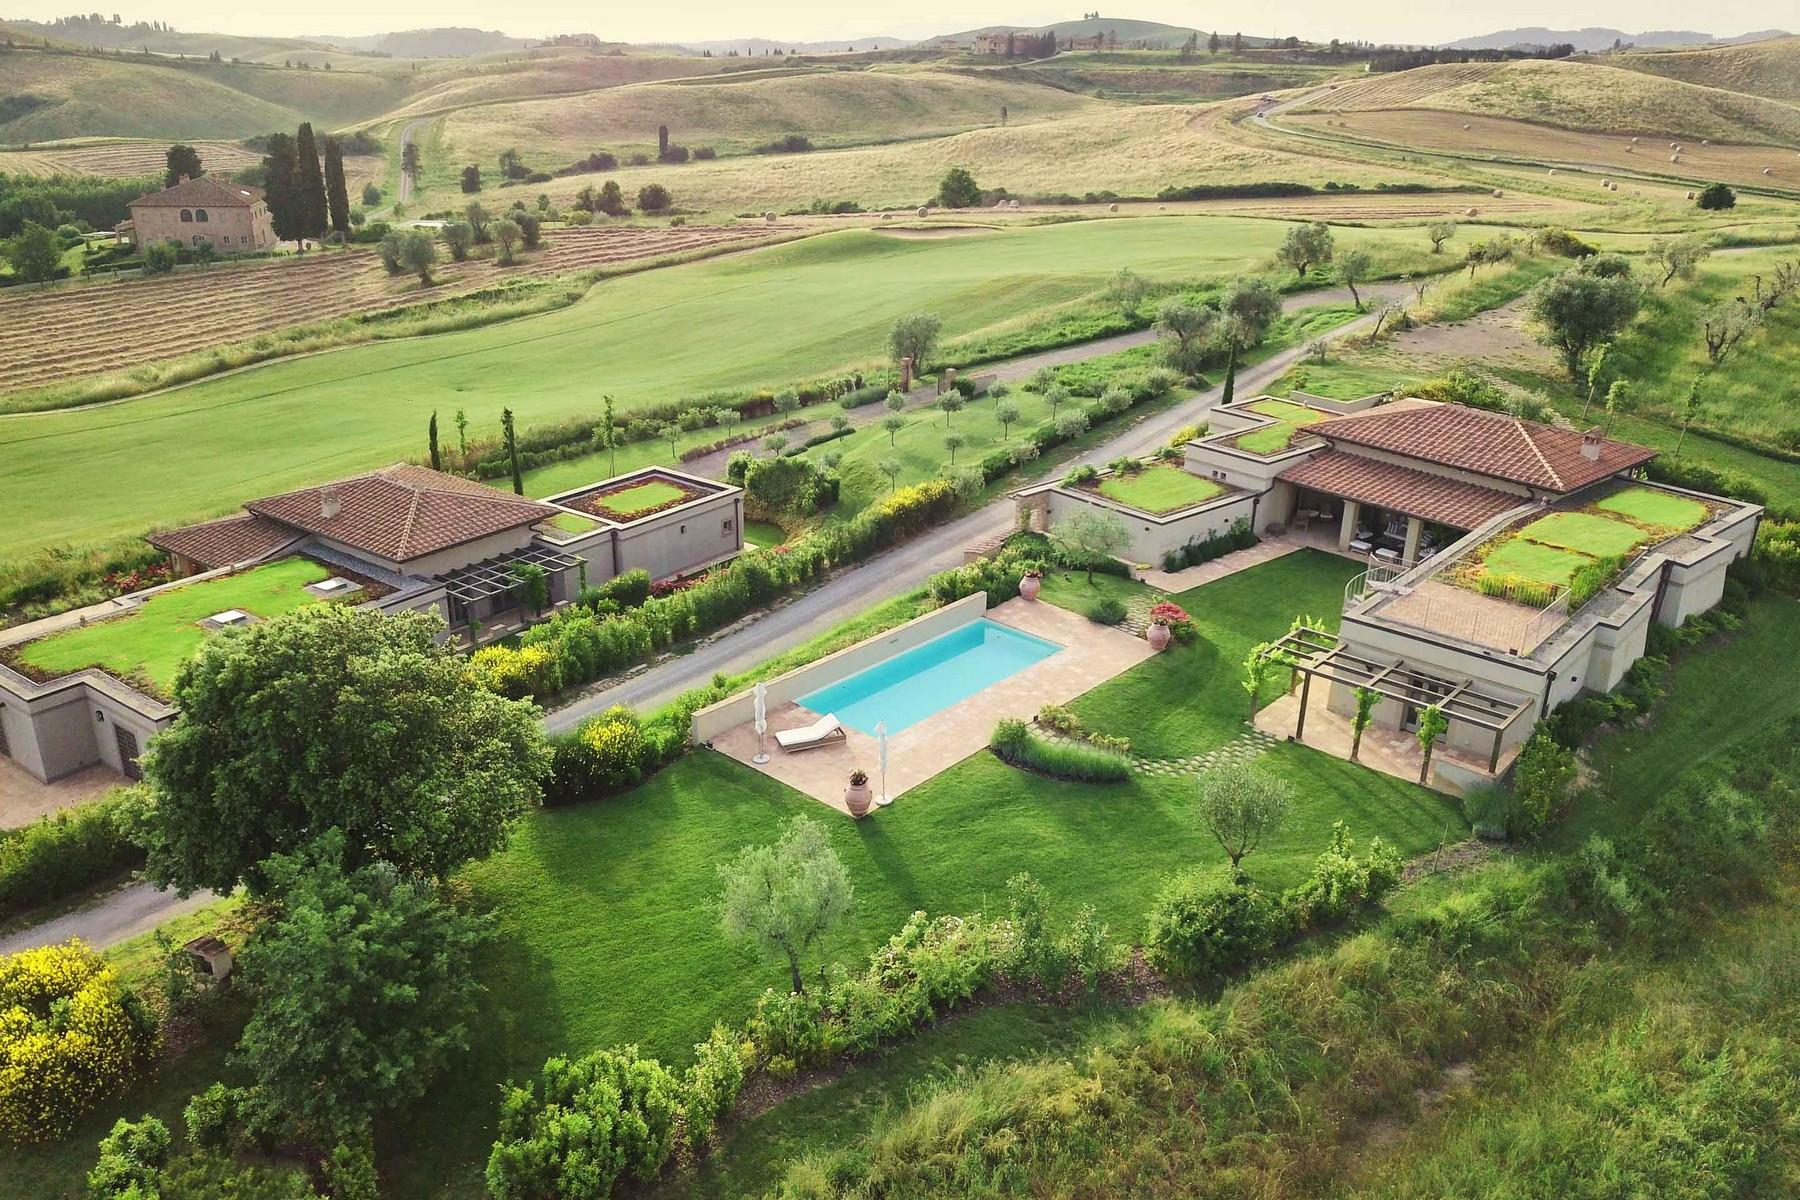 Marvellous new build villas in the Tuscan countryside - 3